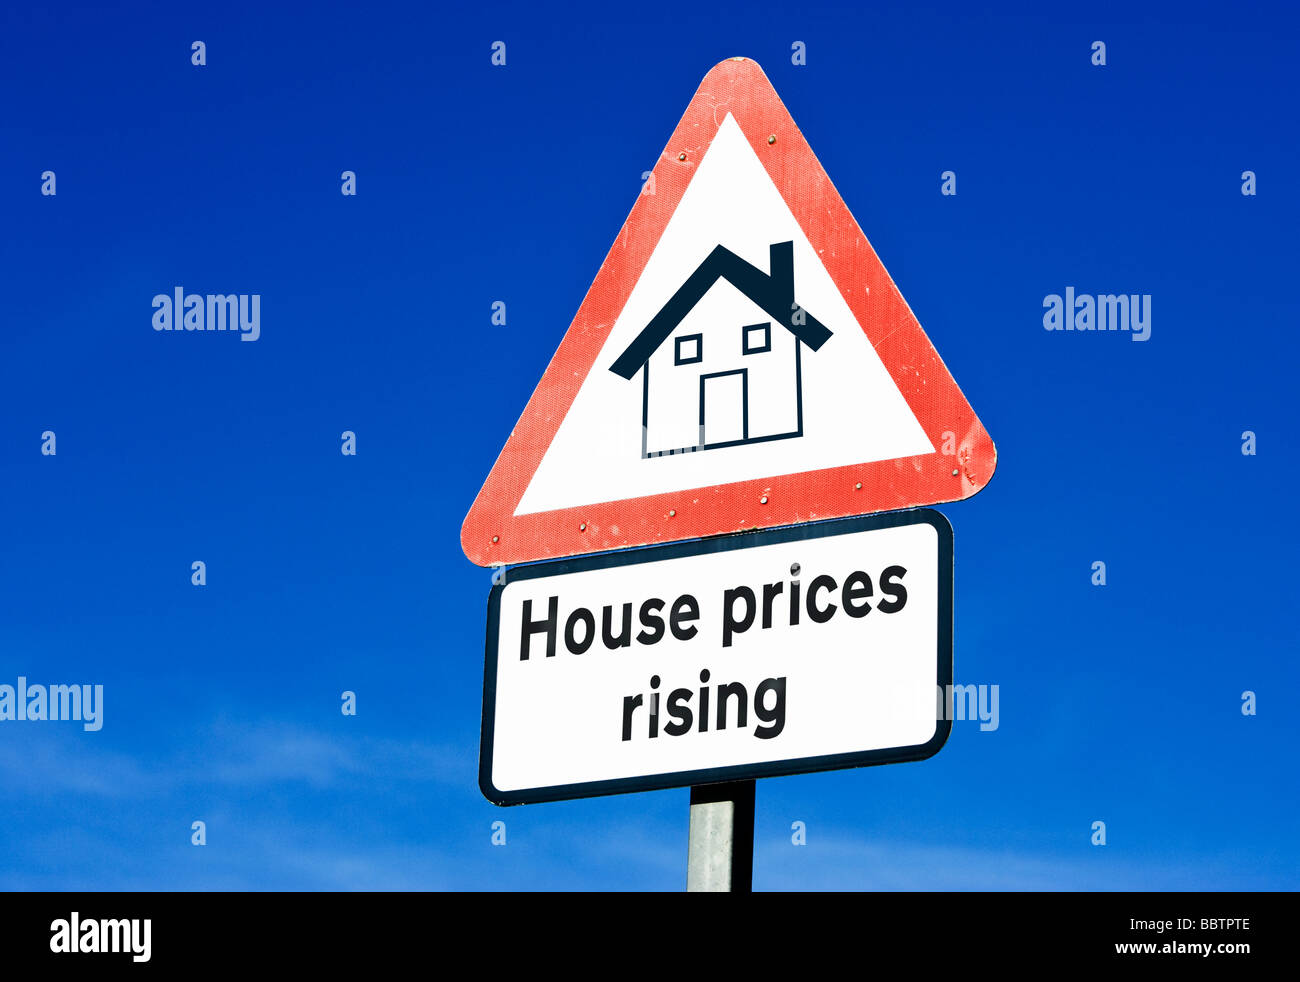 Sign showing House prices rising concept, England UK - Stock Image